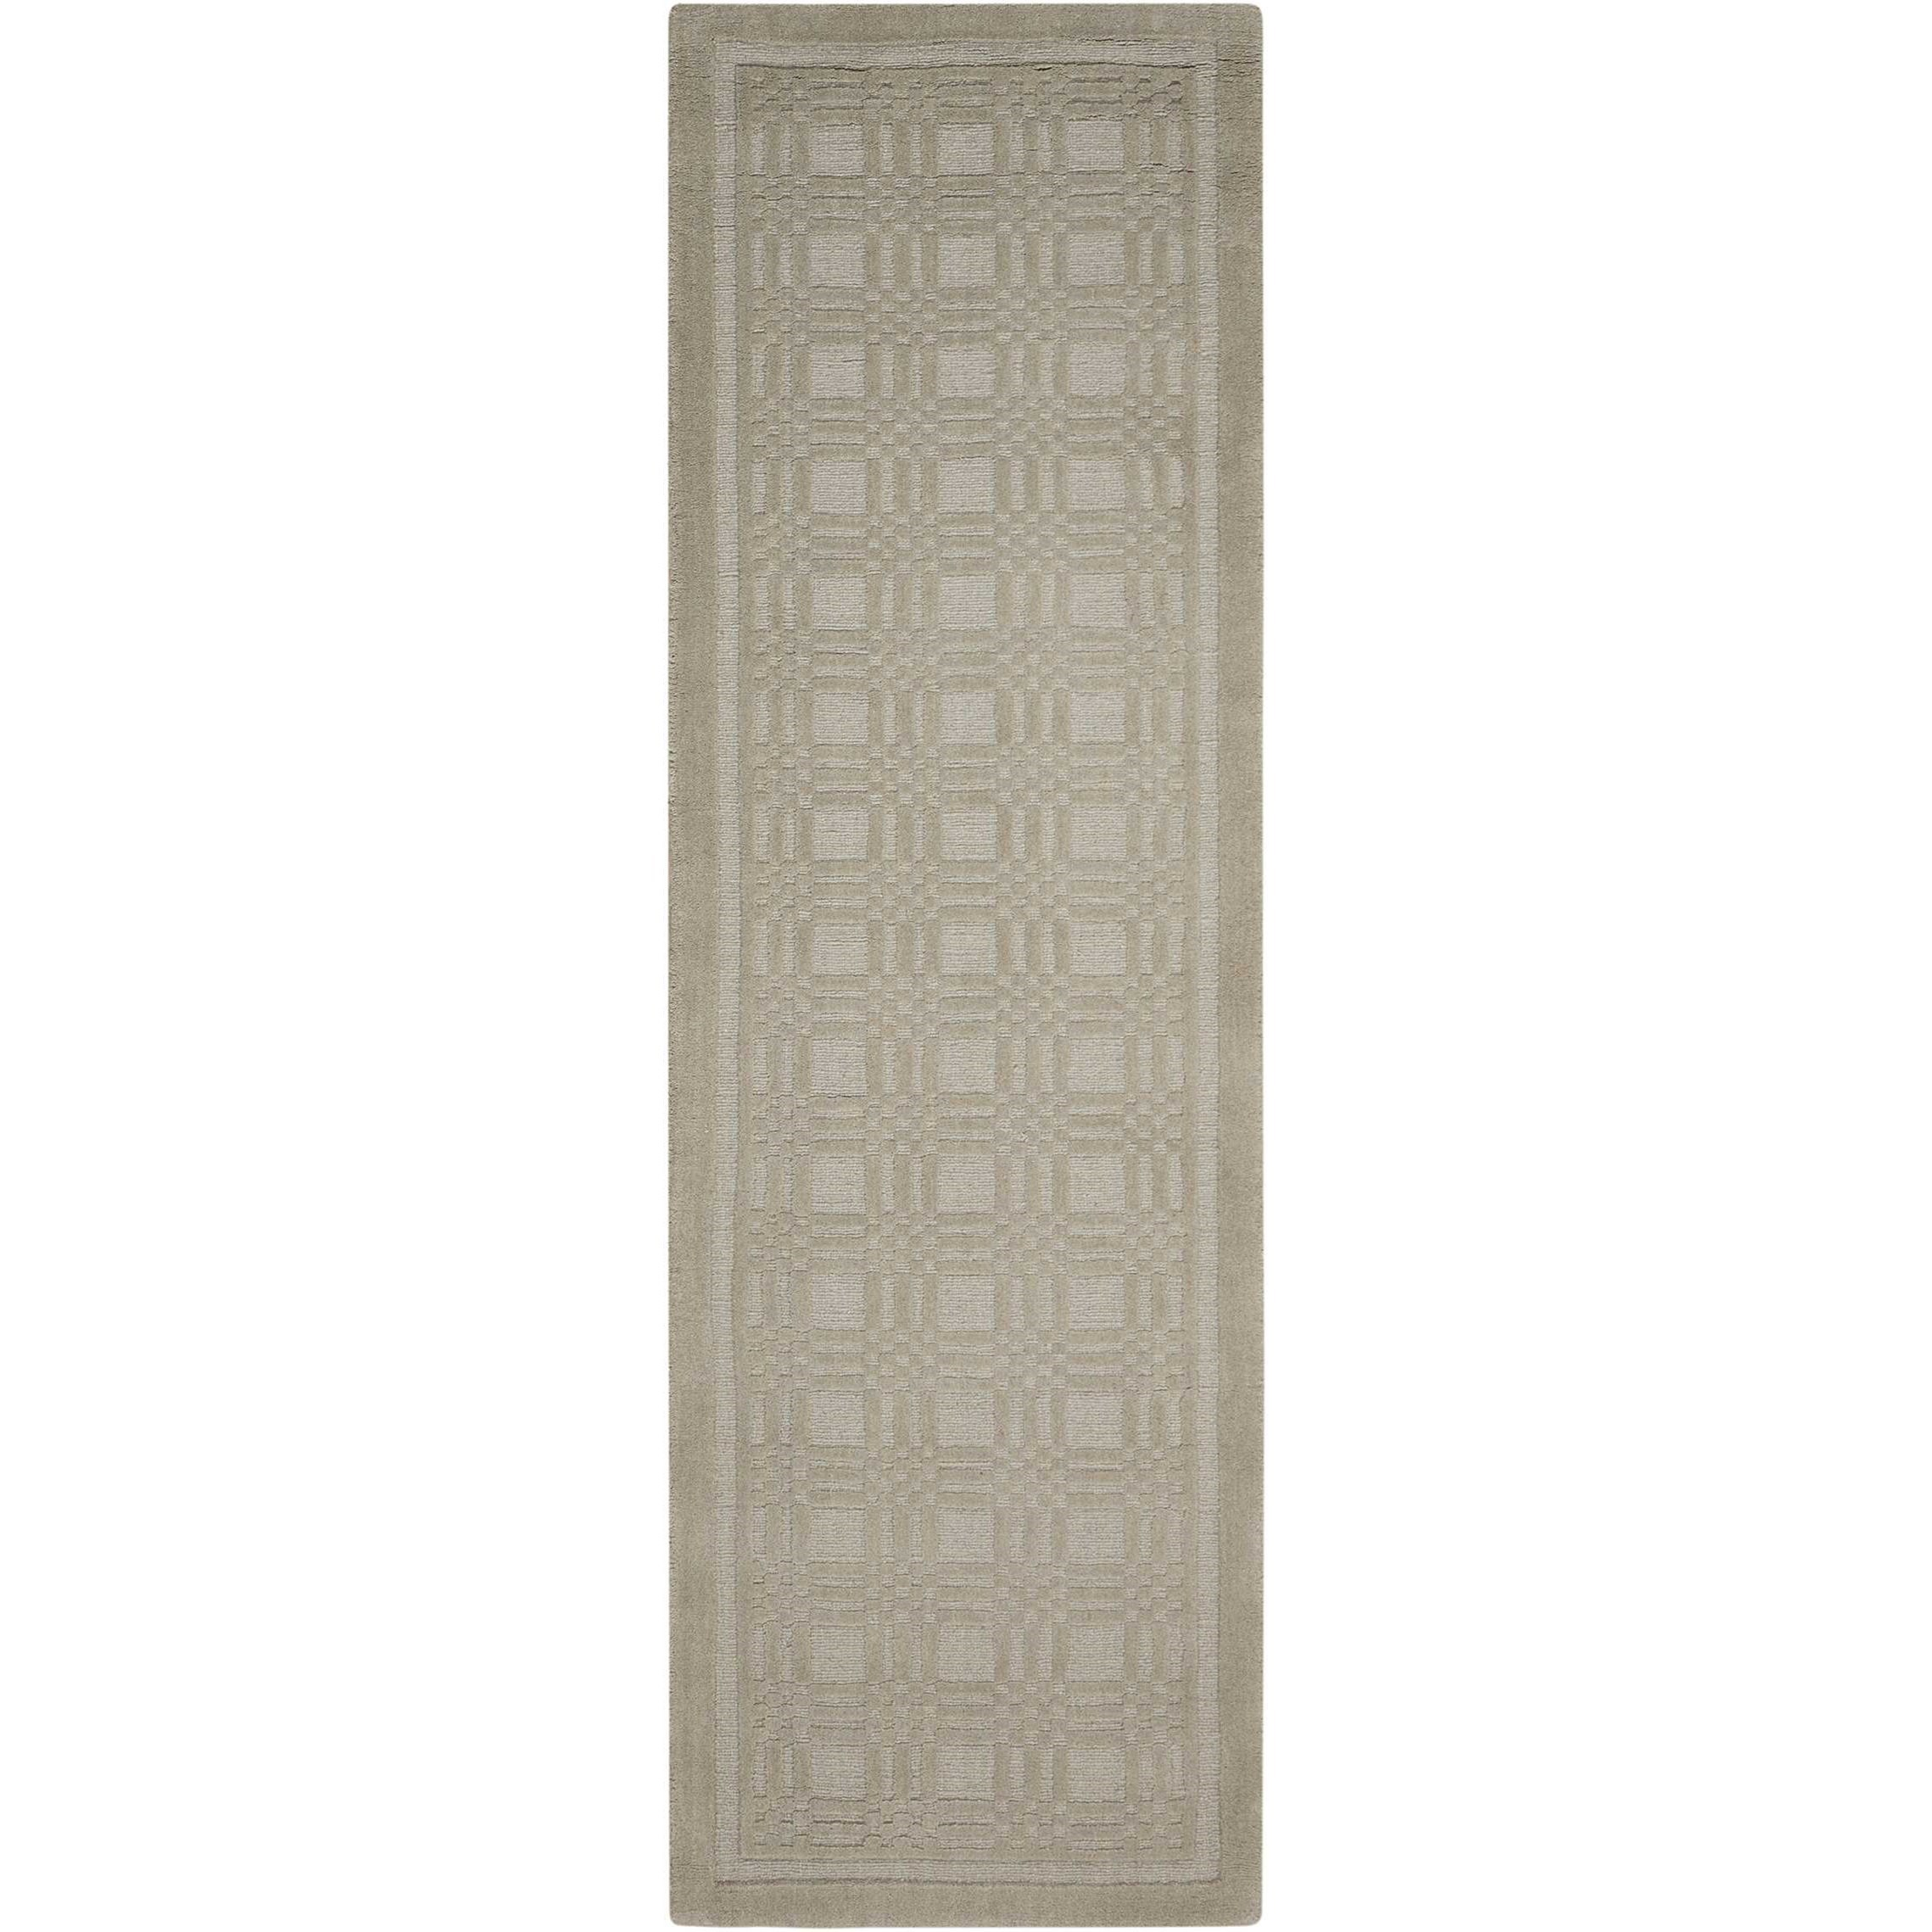 "Westport 2'3"" x 7'6"" Grey Runner Rug by Nourison at Home Collections Furniture"